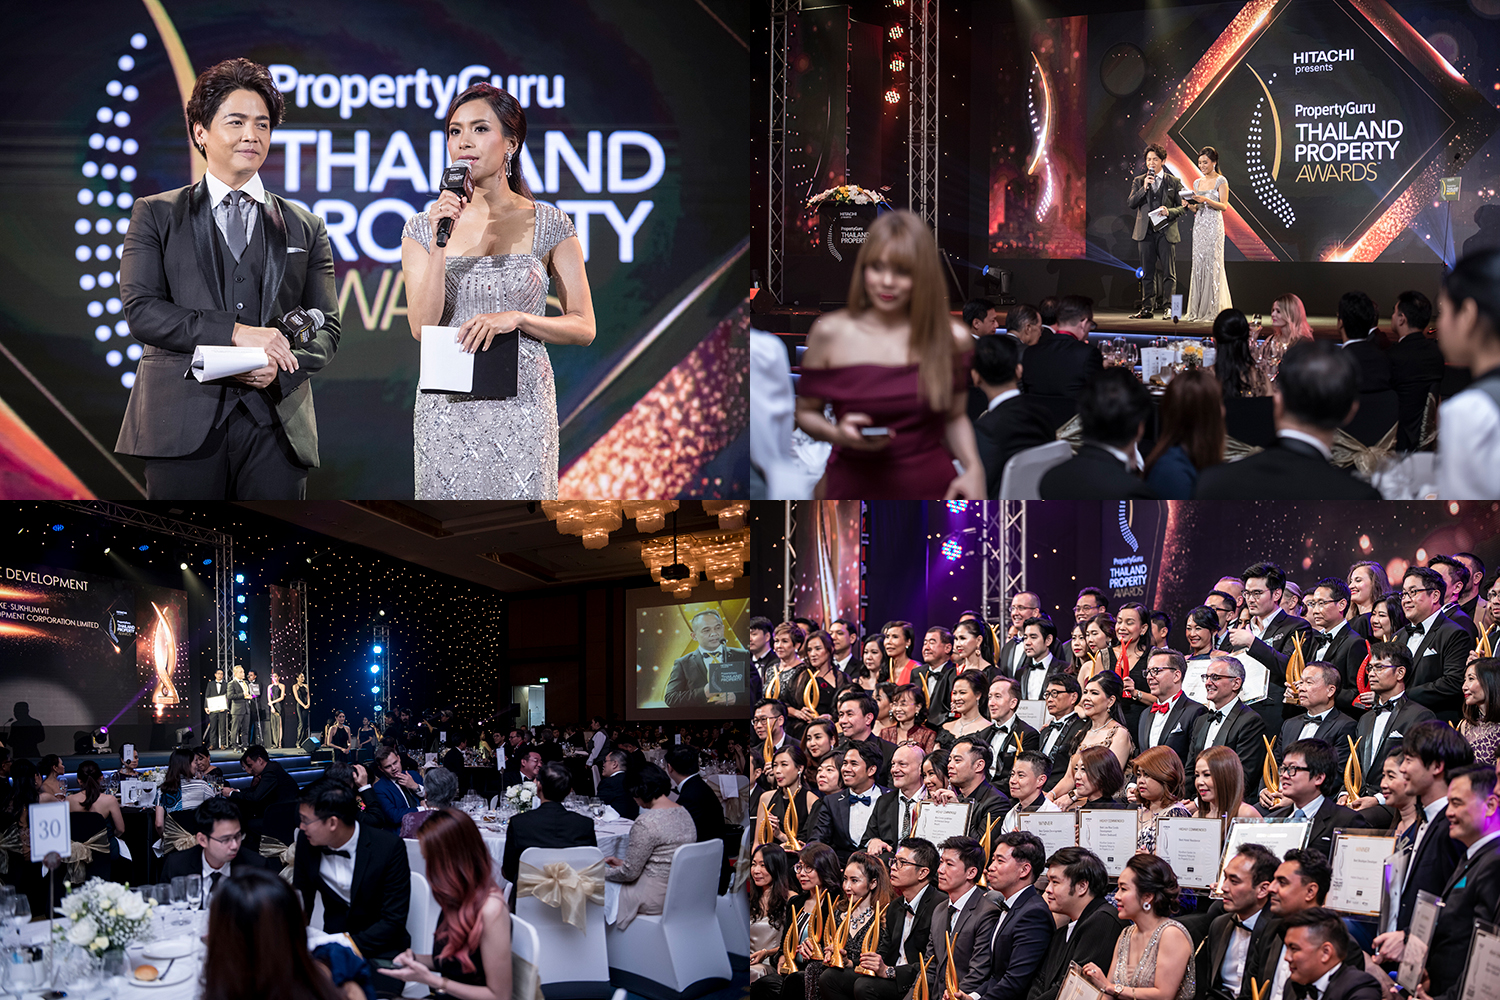 Thailand Property Awards 2019 MC comp